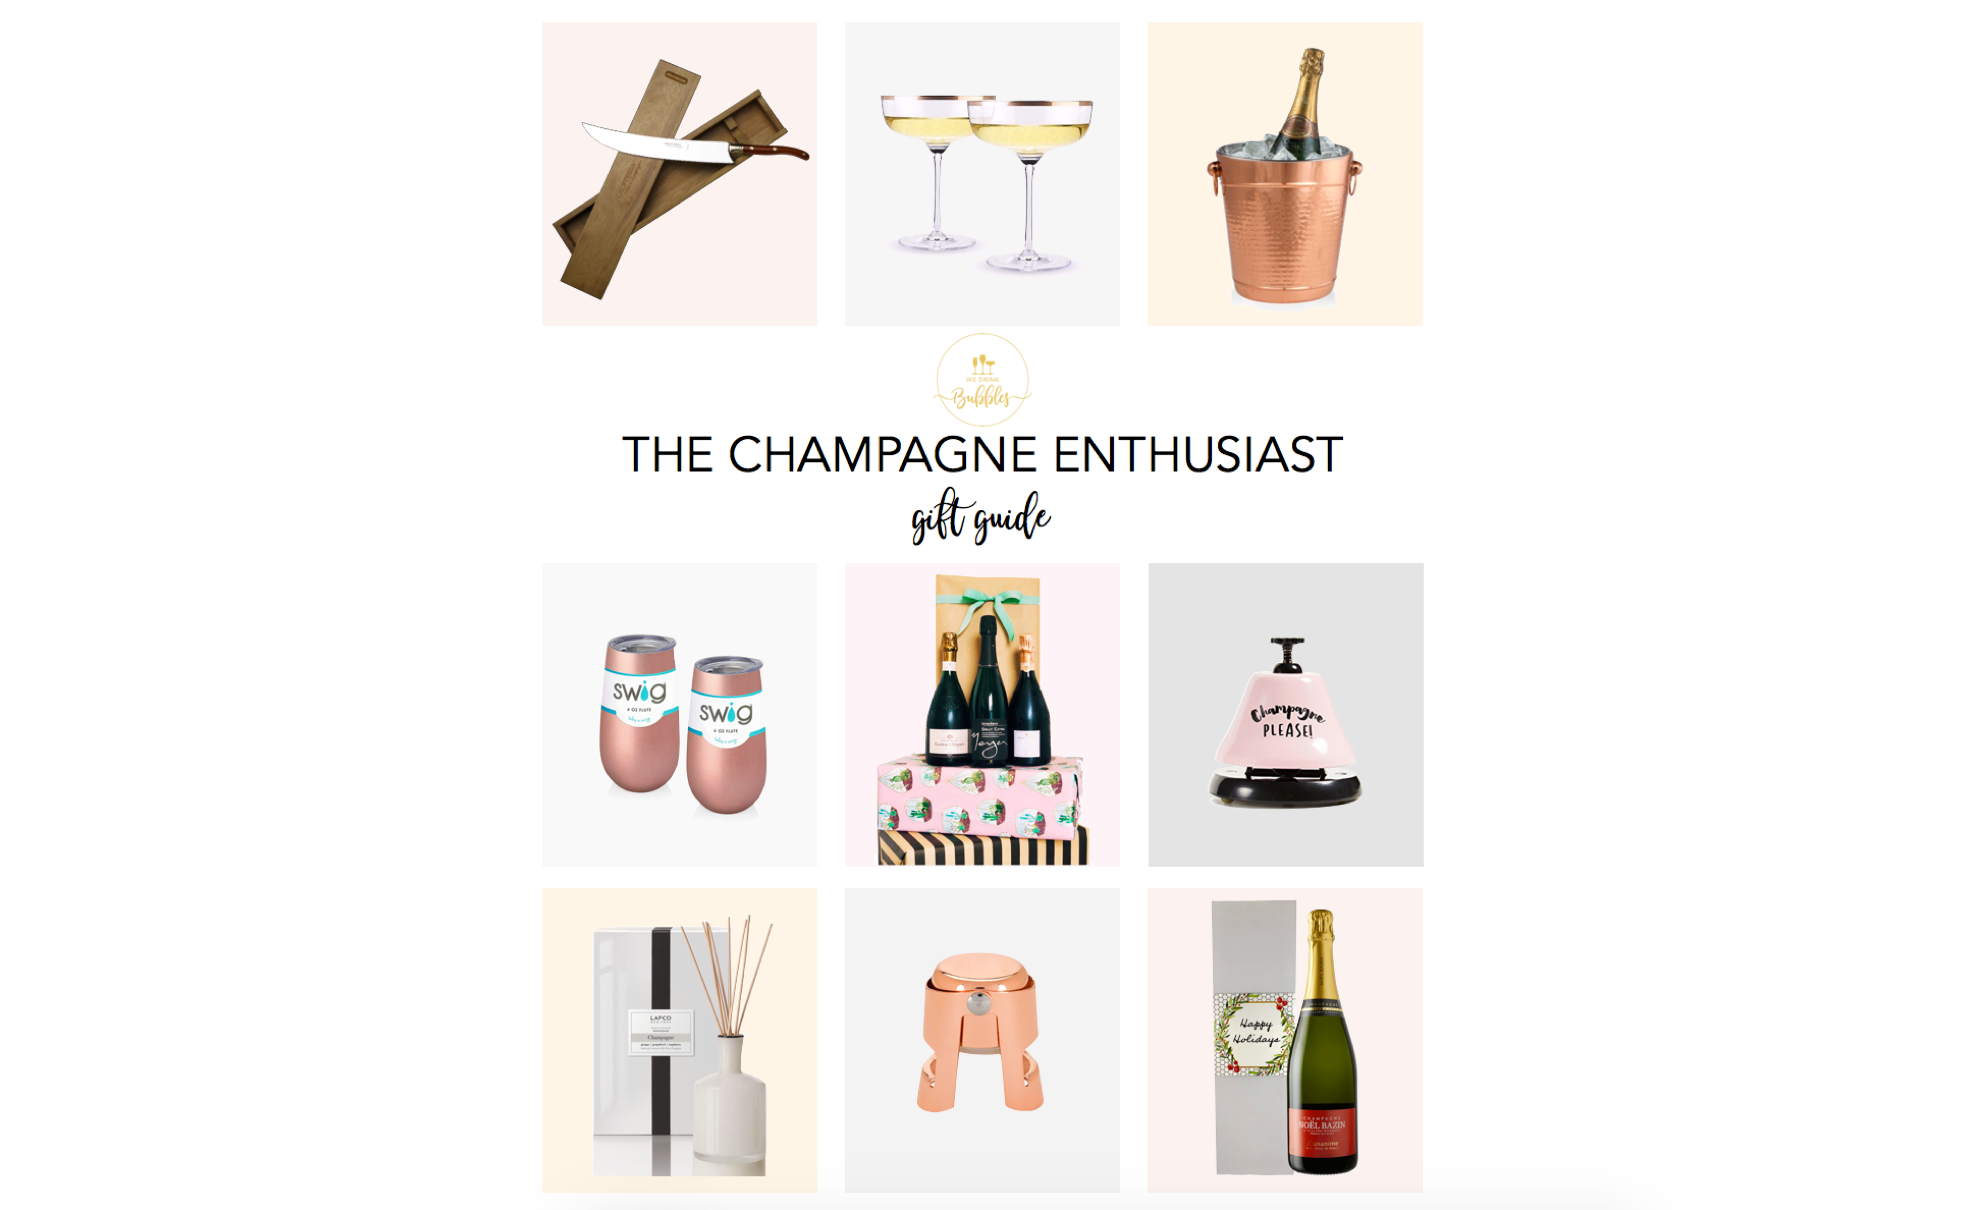 CHAMPAGNE ENTHUSIAST GIFT GUIDE